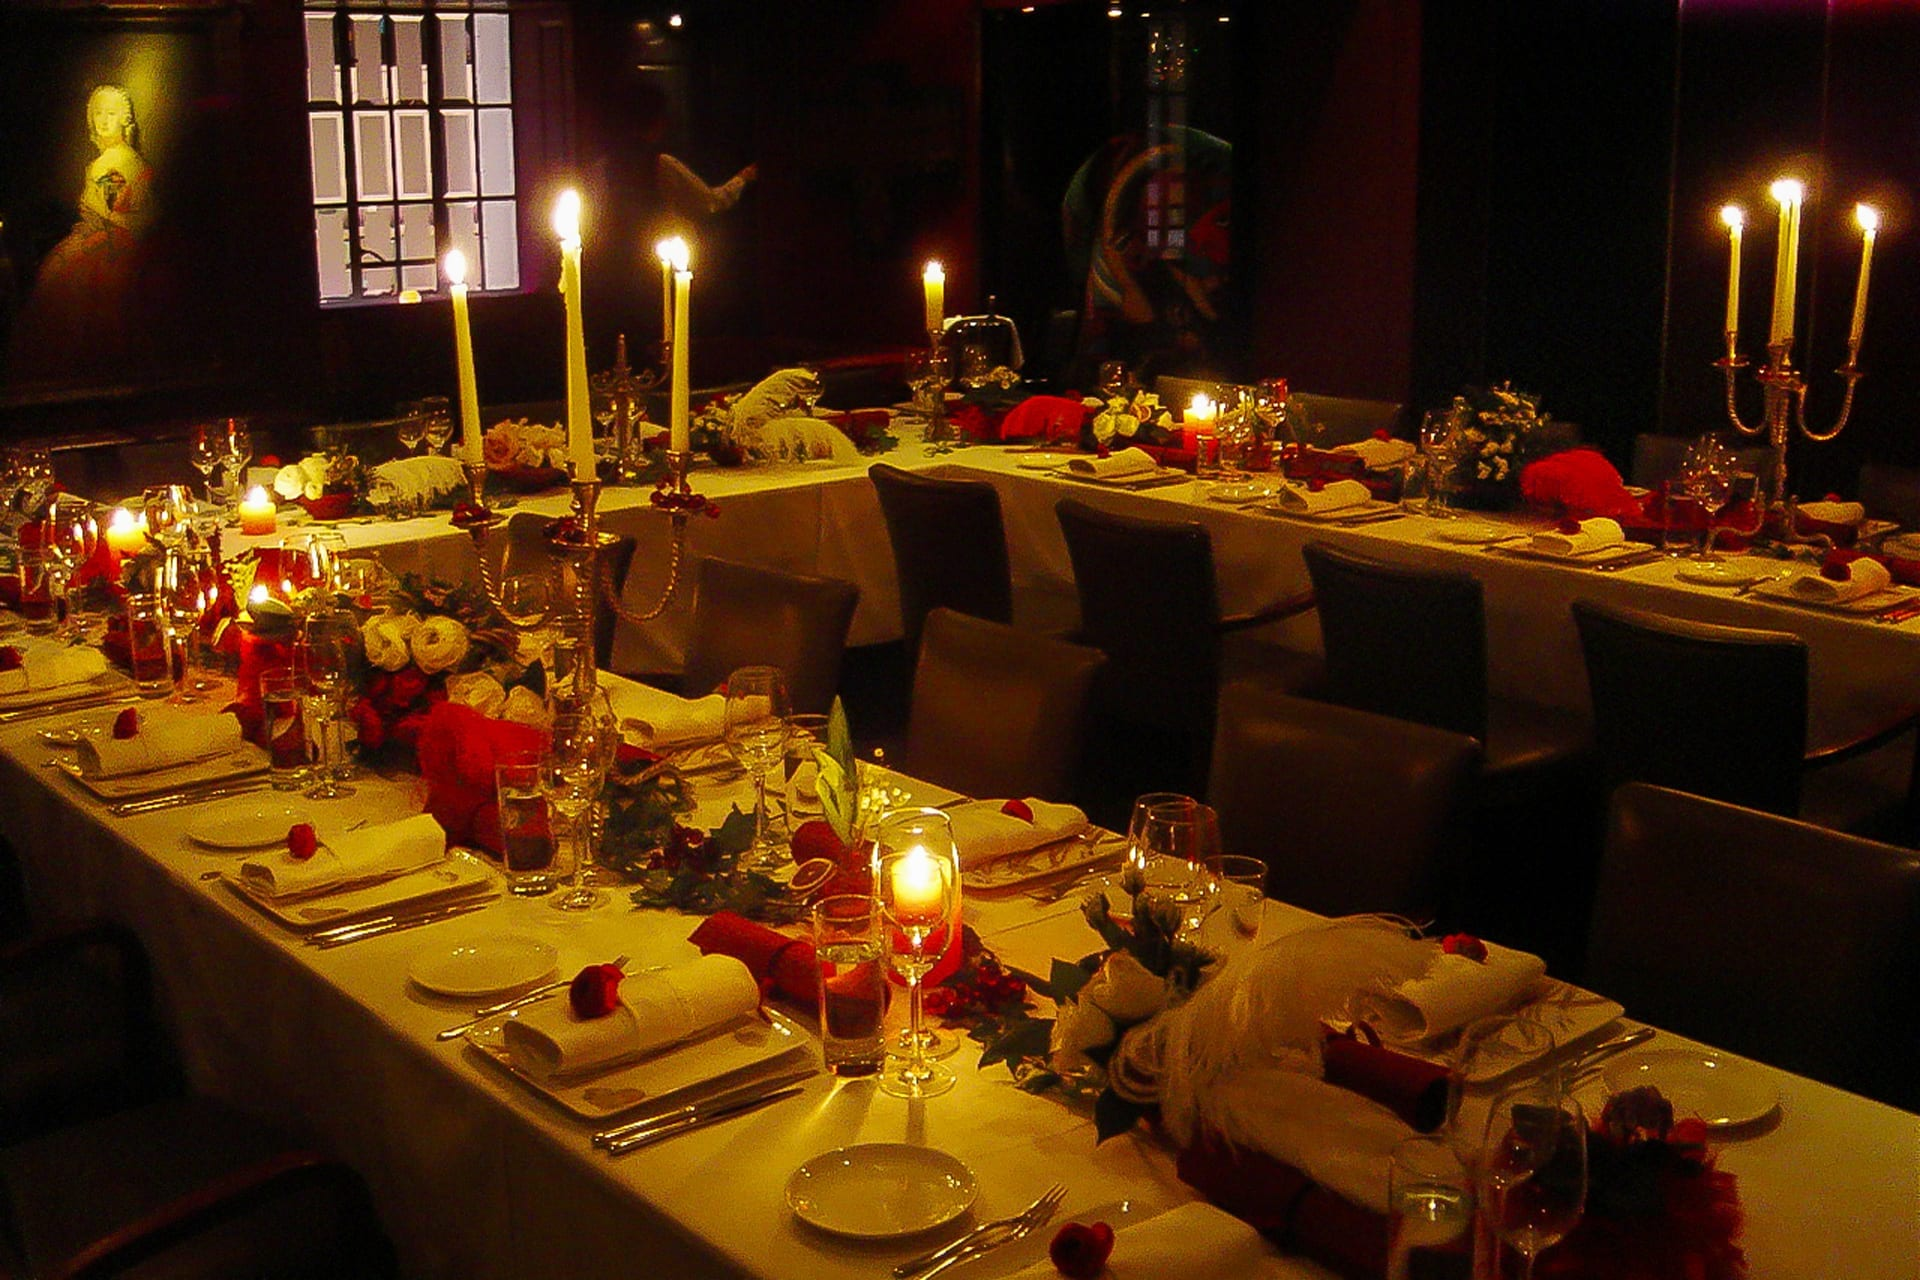 Kim Chan Events| Anna Sui Fragrance Launch Hong Kong, styled dinner table with candles and long centrepiece of flowers